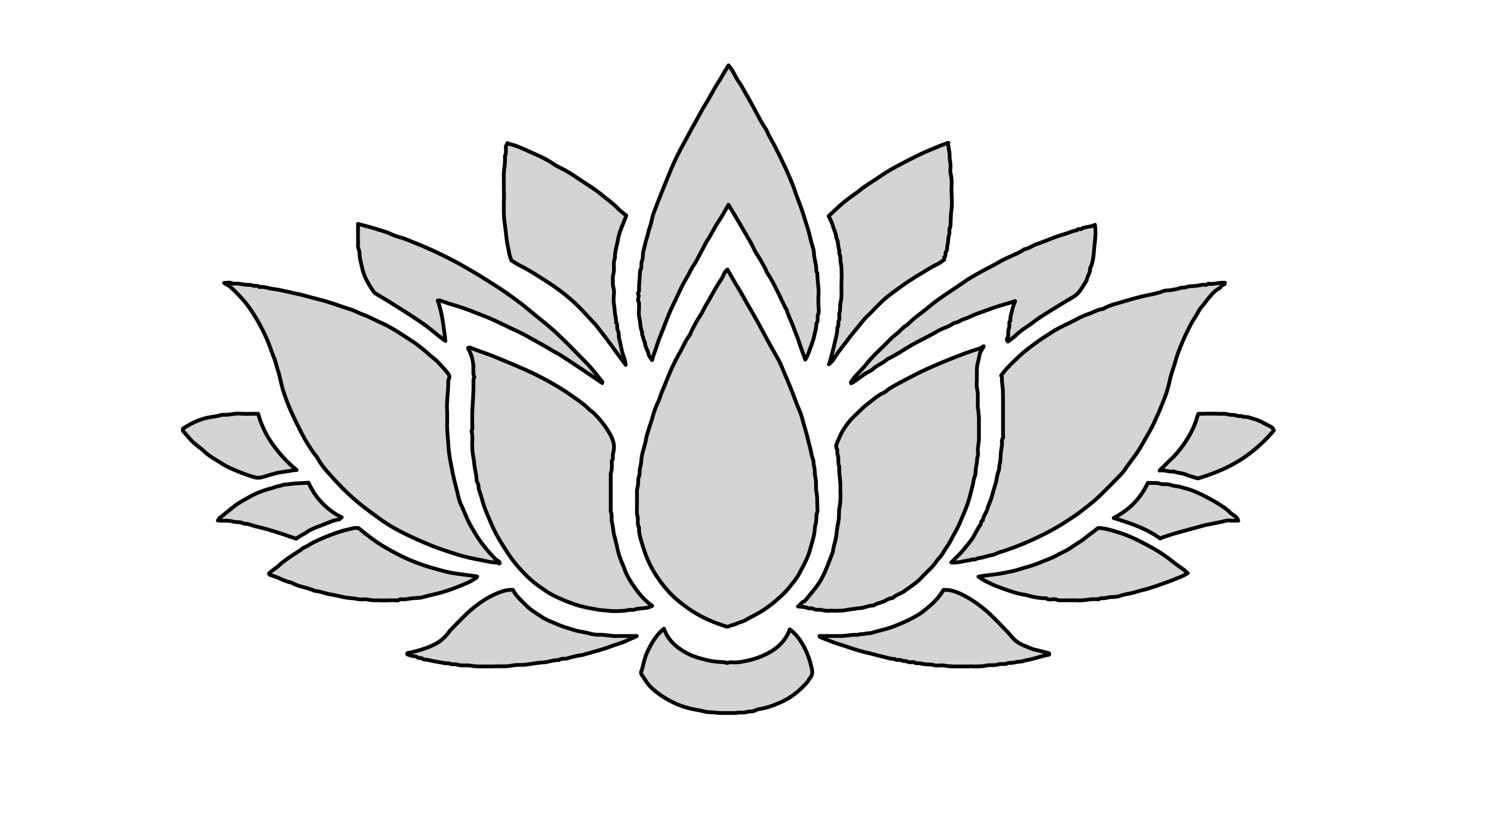 8 w string art lotus flower pattern template zoom pronofoot35fo Choice Image